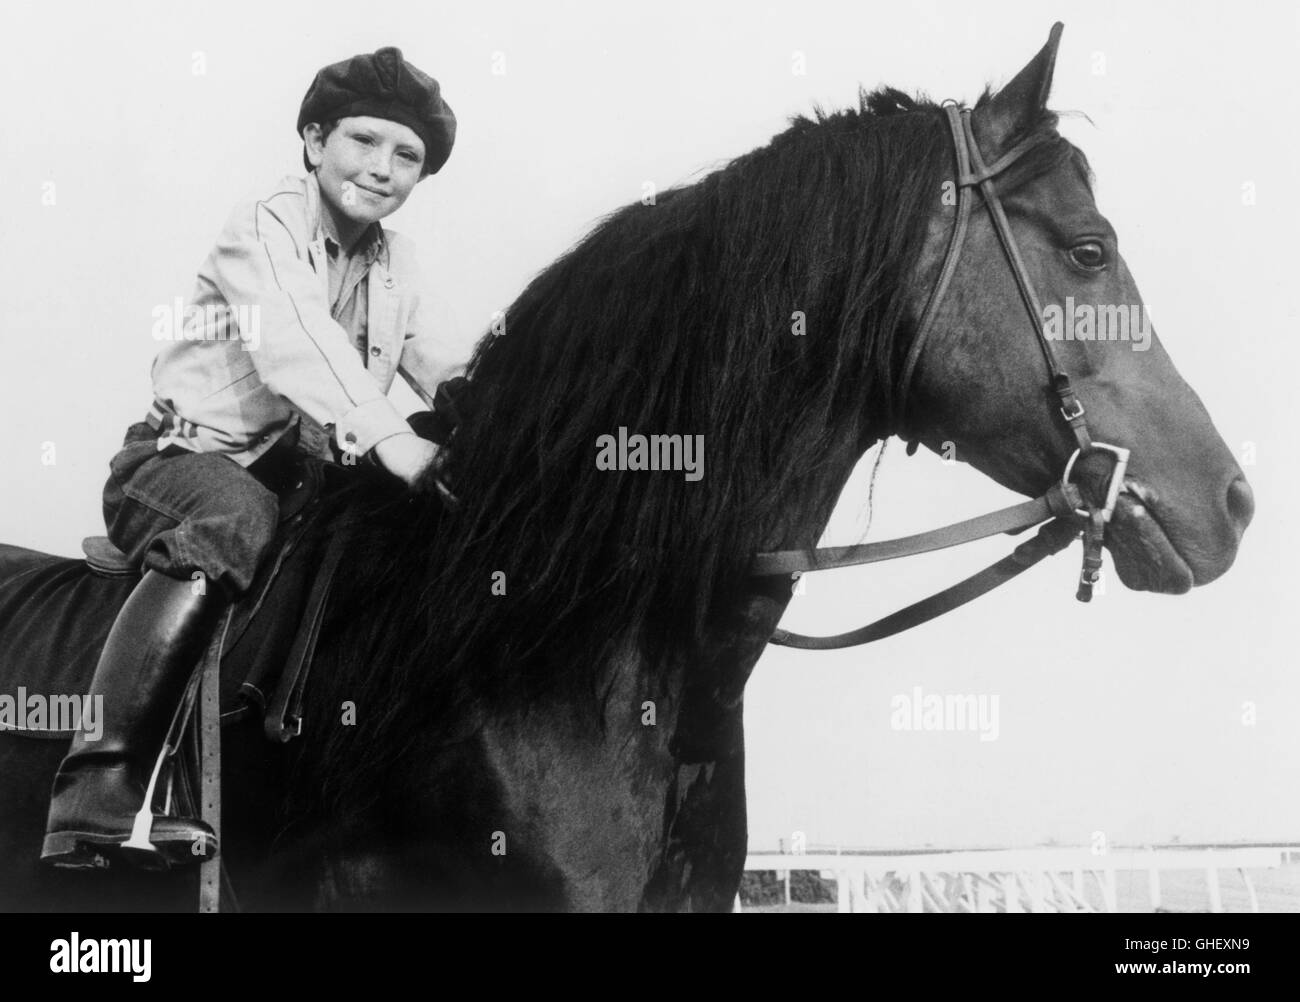 THE BLACK STALLION USA 1979 Carroll Ballard Survivors of a shipwreck and a three-month stay on a deserted island, - Stock Image